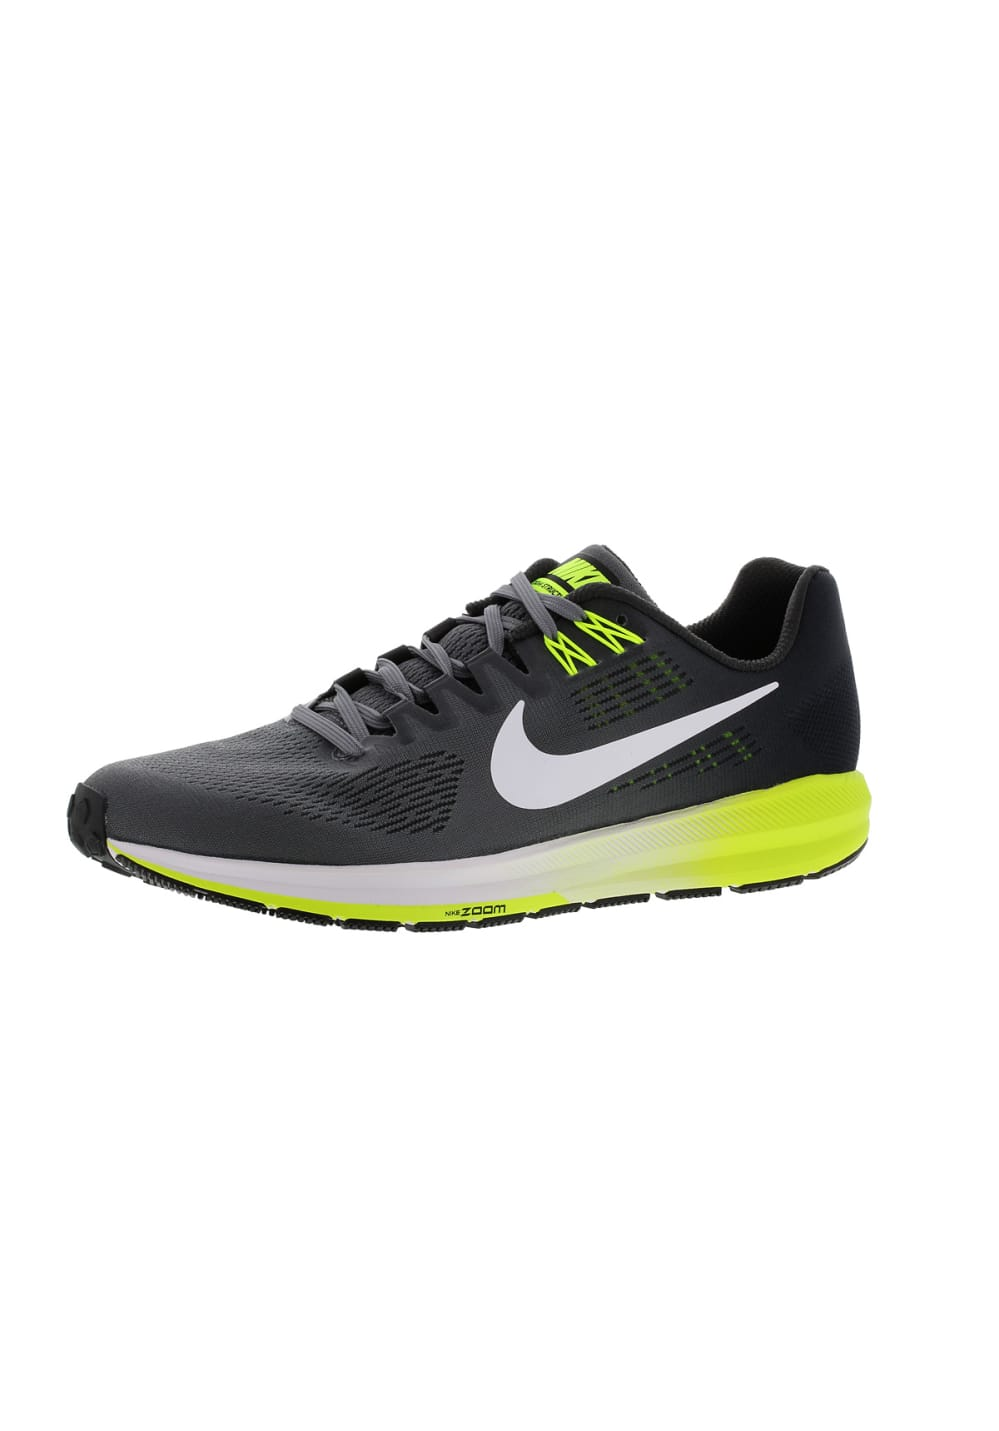 innovative design 485ea 075e1 Nike Air Zoom Structure 21 - Running shoes for Men - Grey